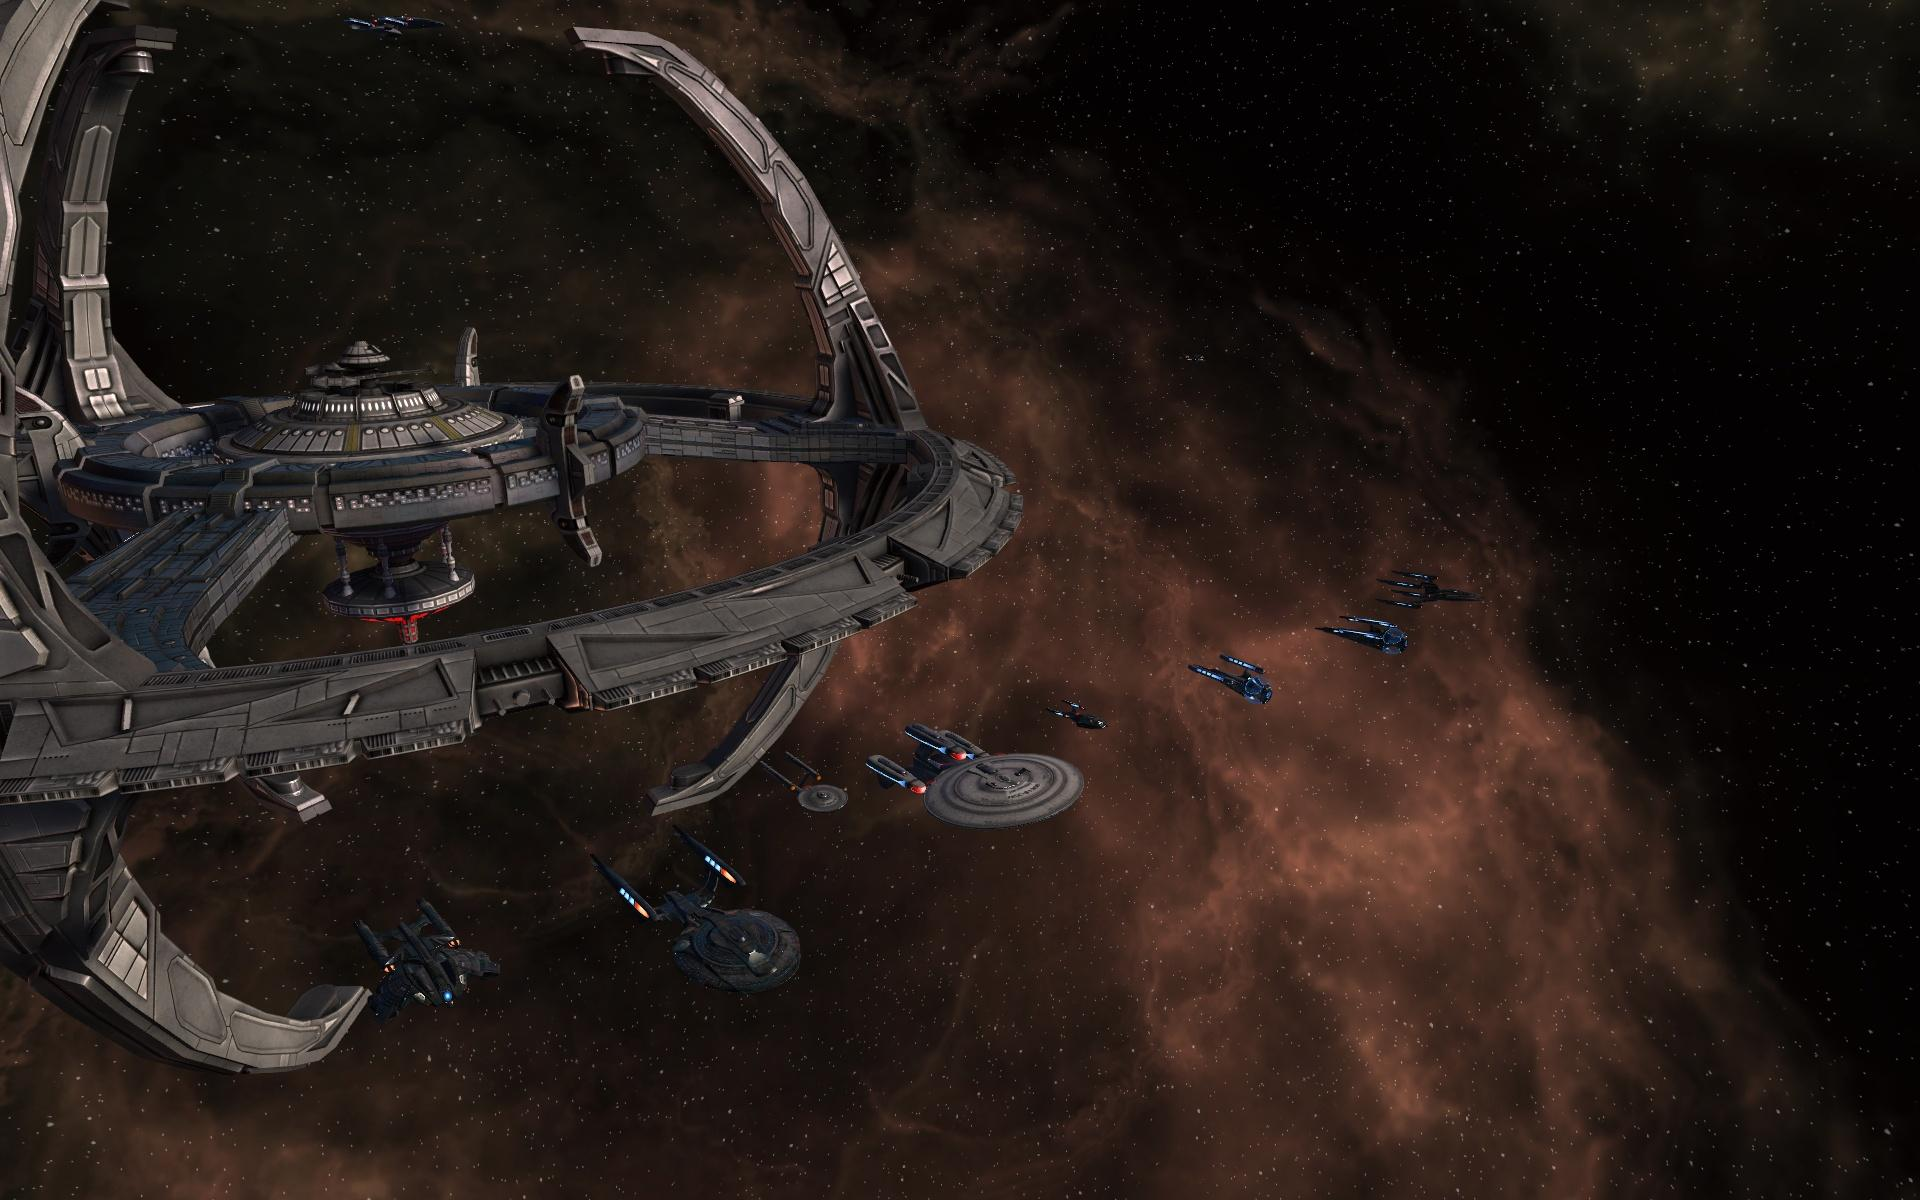 Star trek online publisher promises future free to play on consoles digital trends - Star trek online console ...